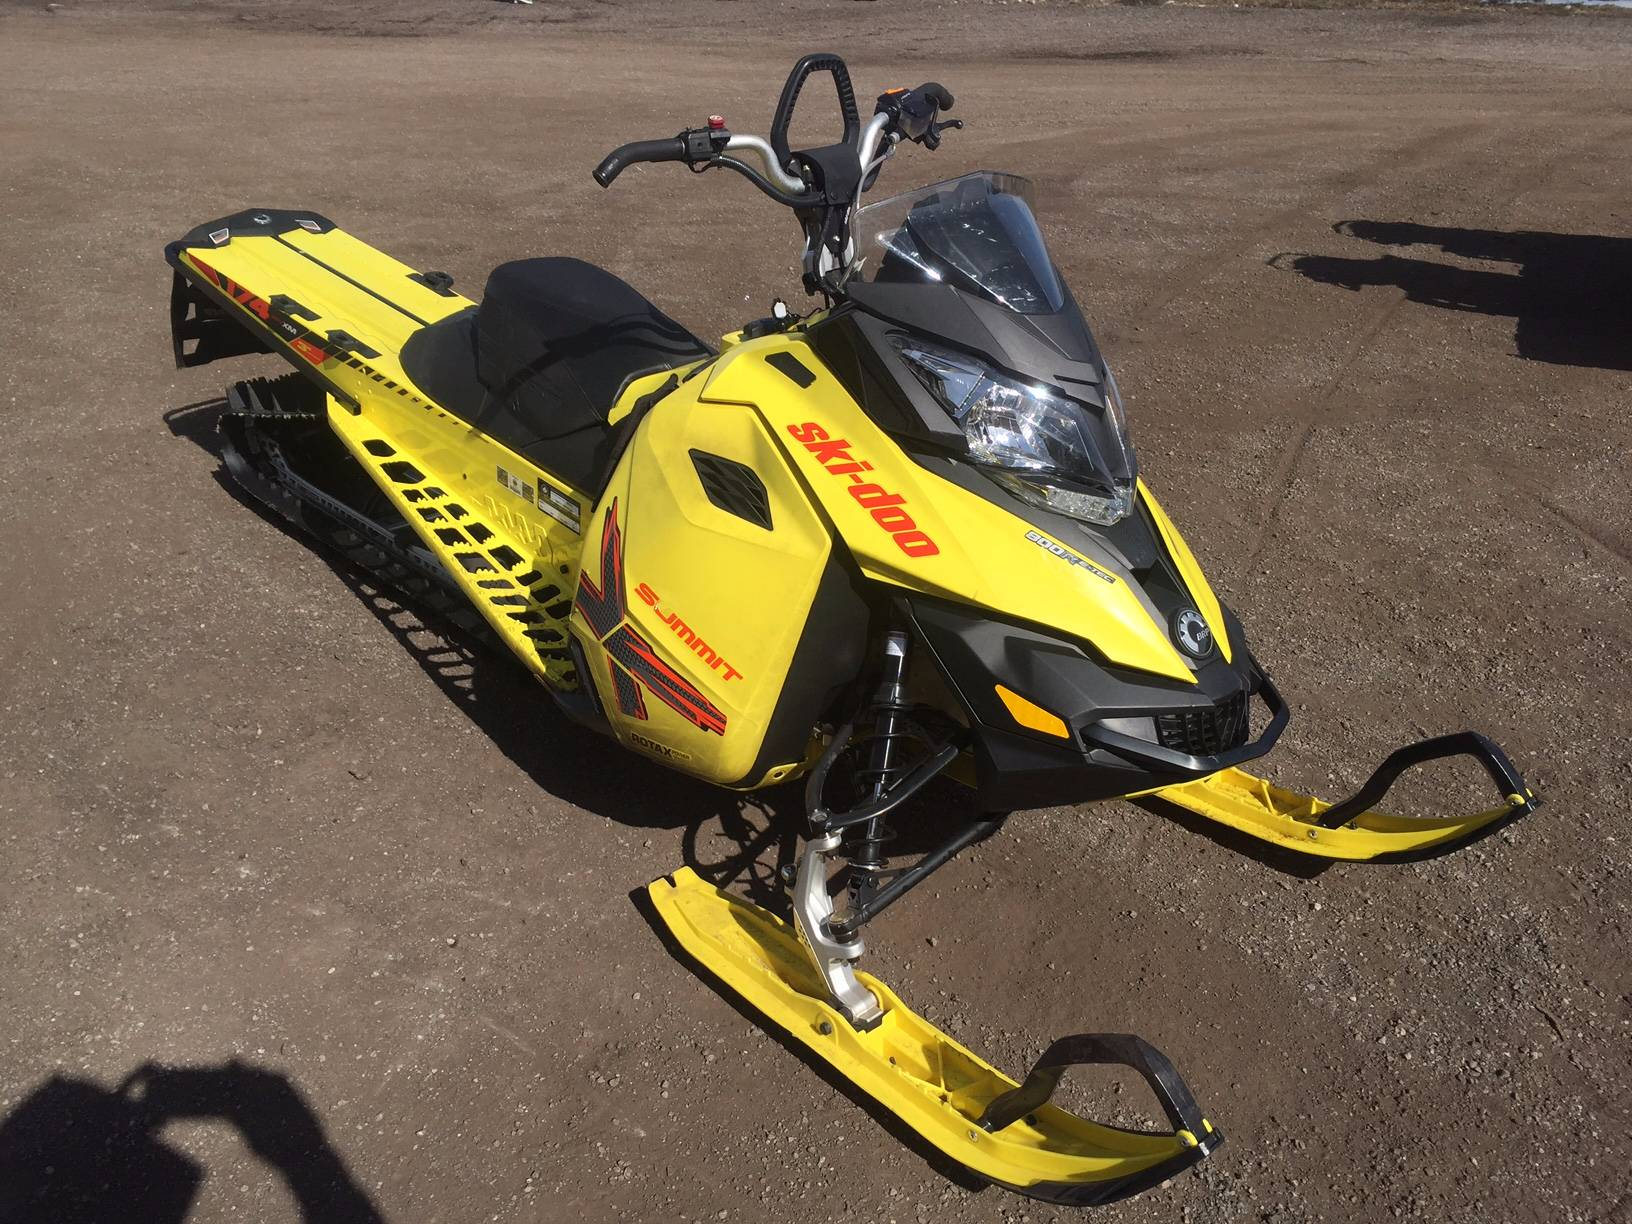 "2015 Ski-Doo Summit X 800 174"" T3 in Kamas, Utah"